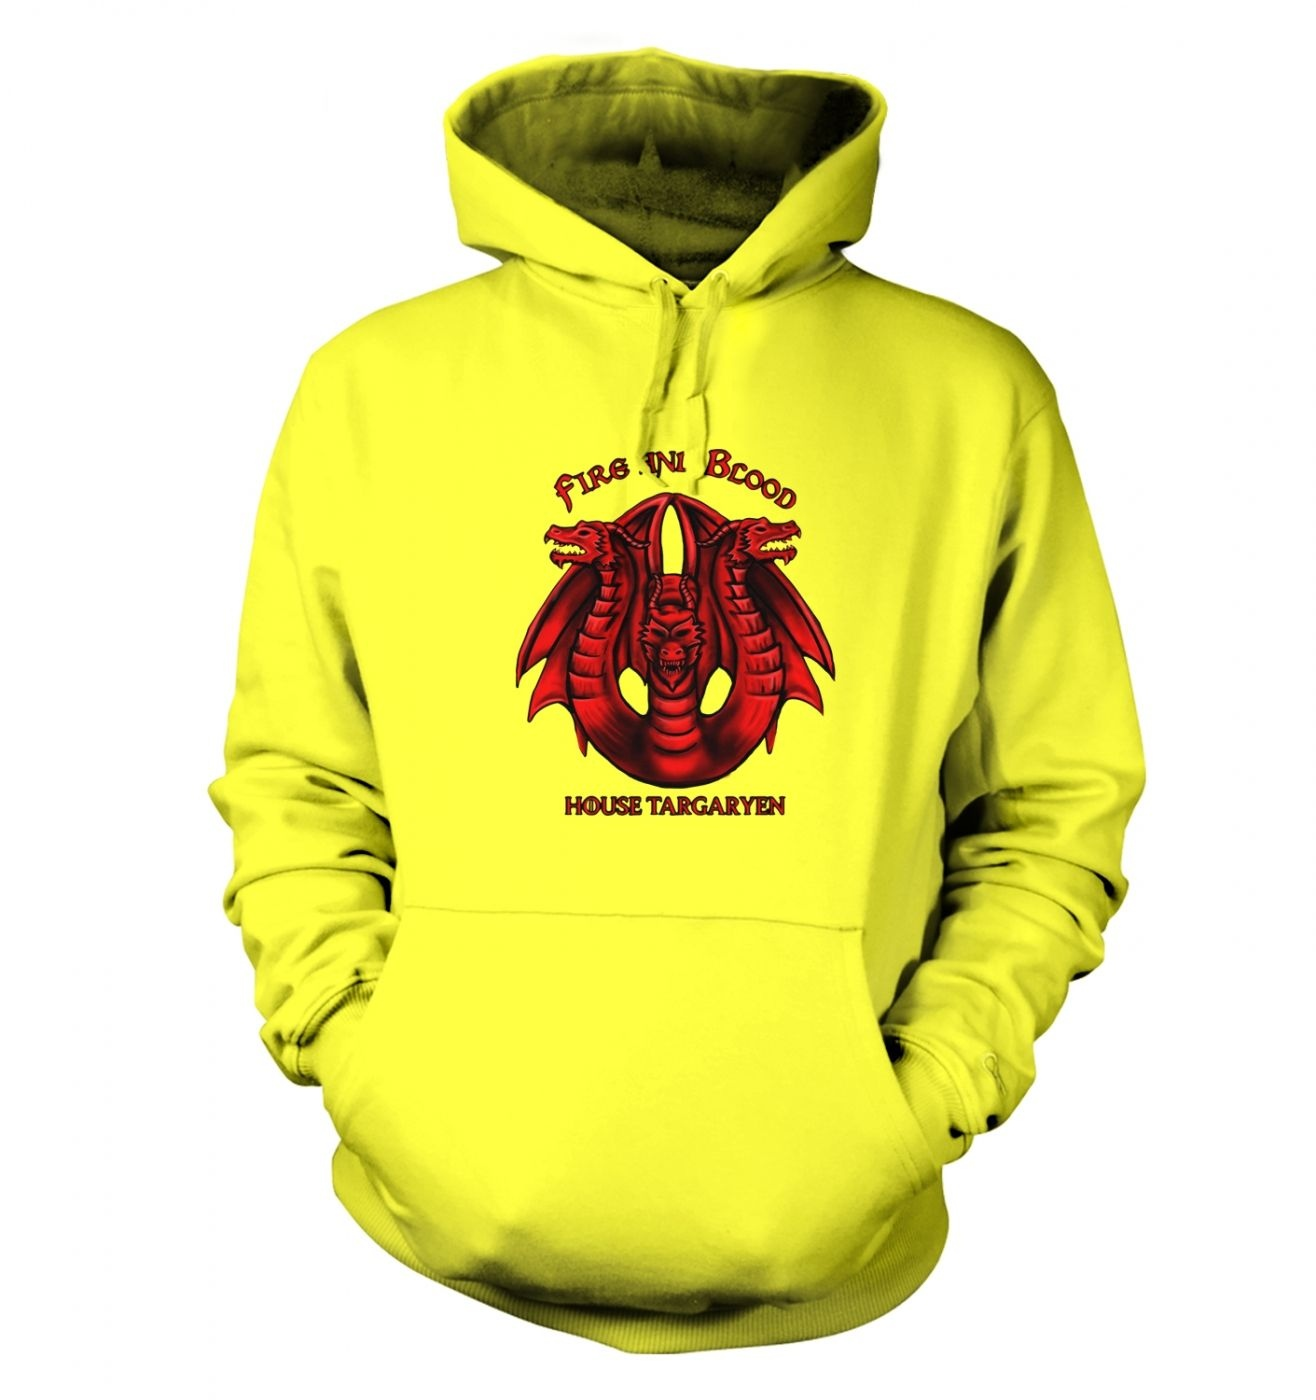 House Targaryen hoodie- Inspired by Game of Thrones